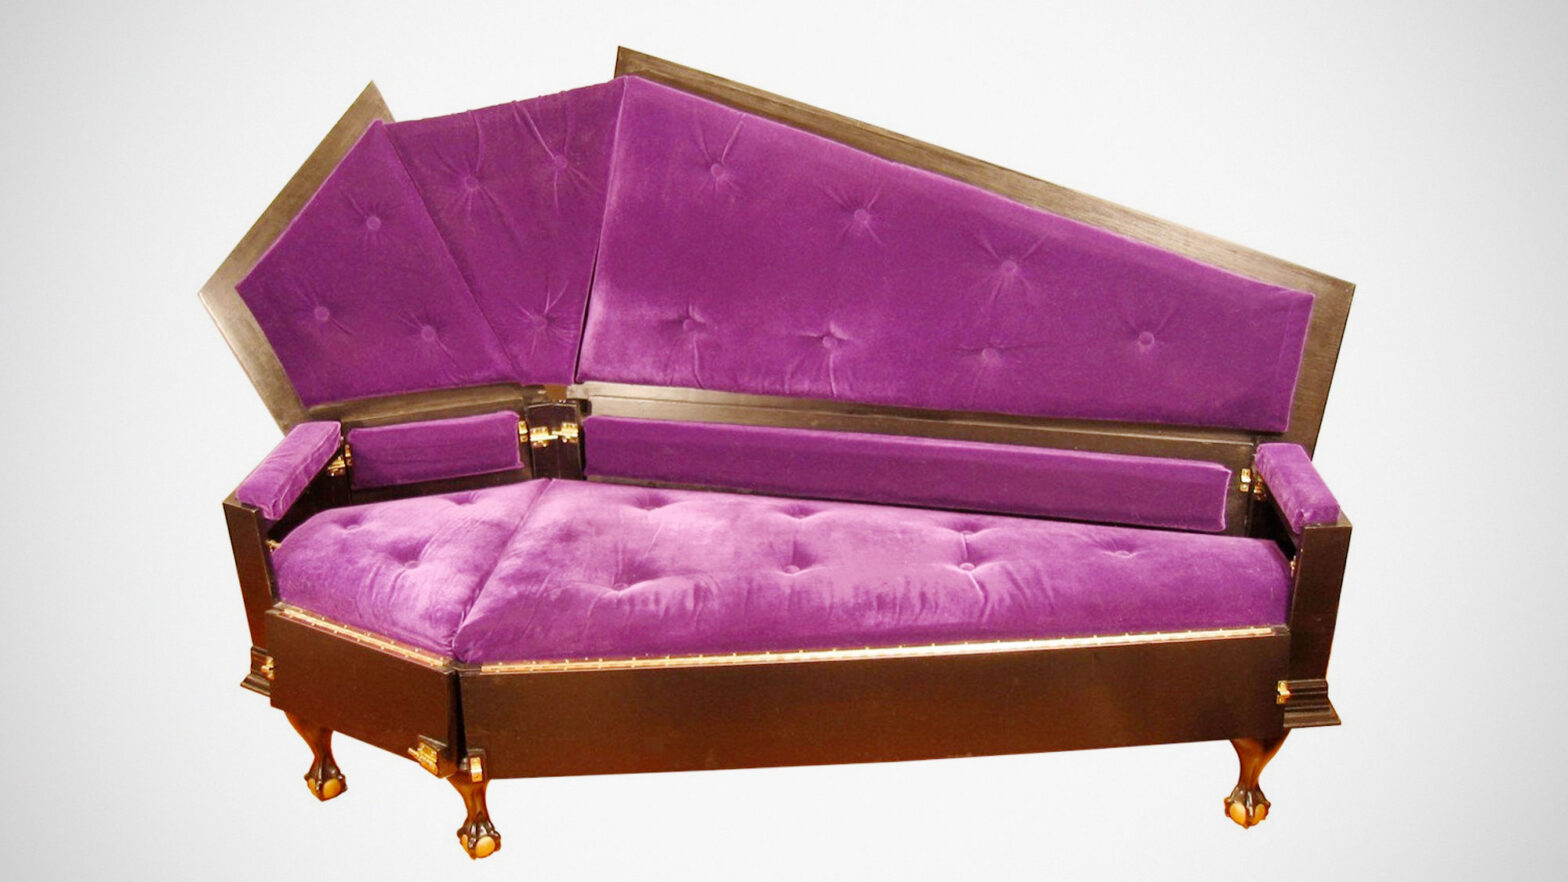 VonErickson's Original Coffin Couch